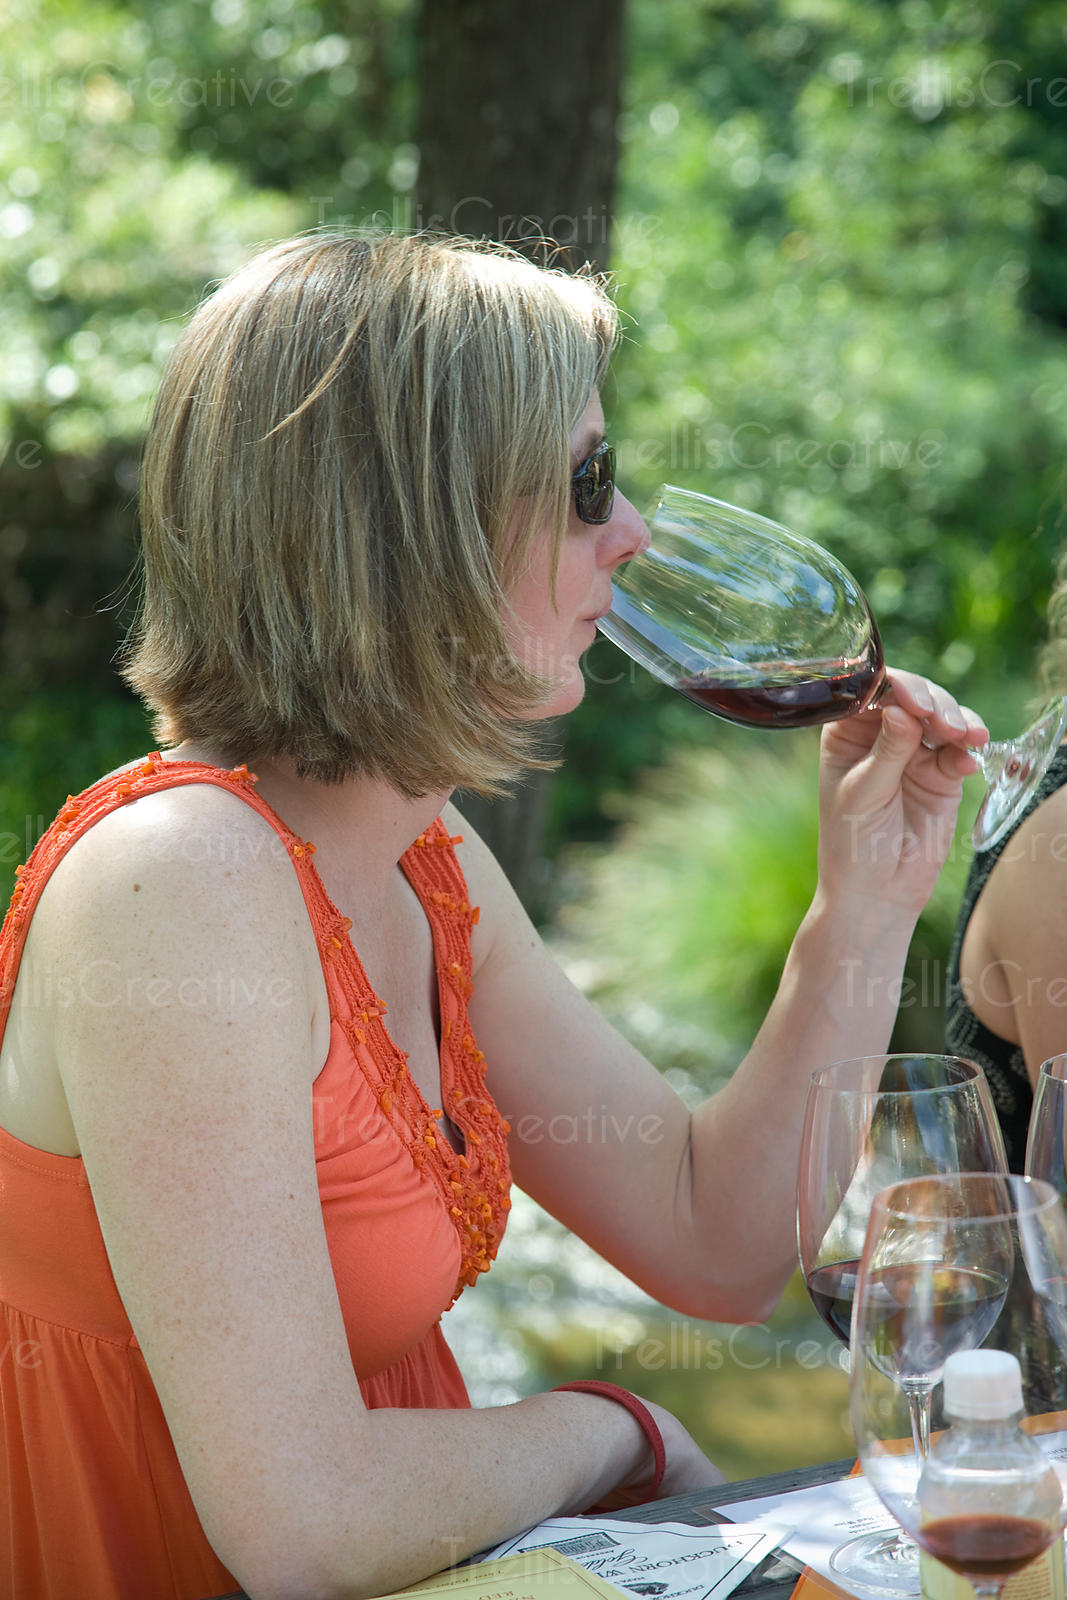 A young woman drinking a glass of red wine